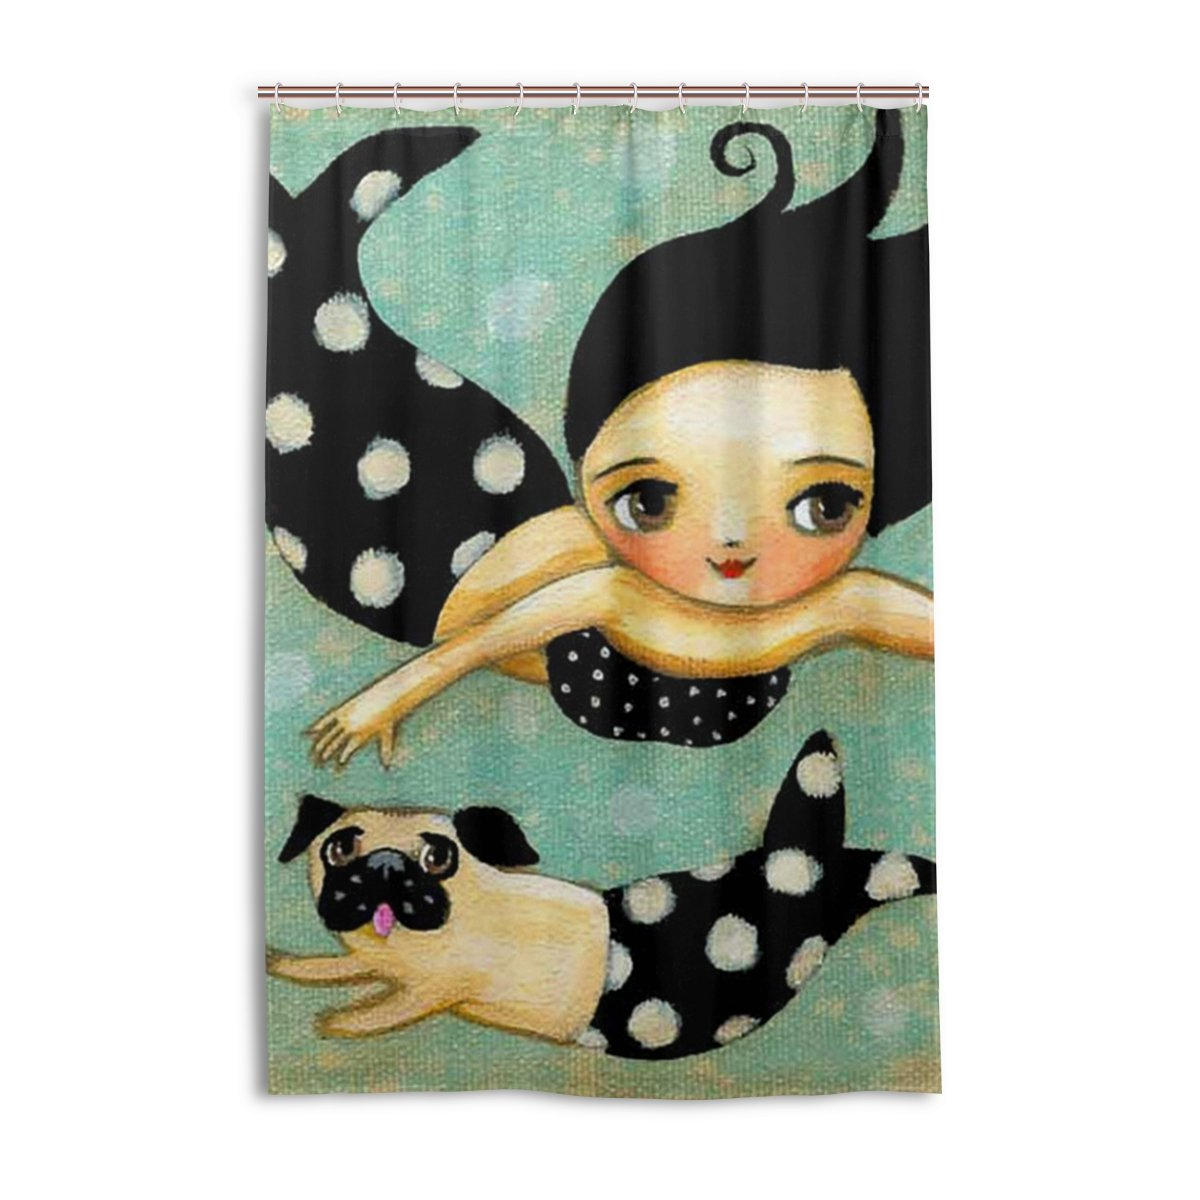 A lie 48 x 72 Inch Shower Curtain, Vintage Mermaid Swimming, Waterproof Polyester Fabric Decorative Bath Curtains